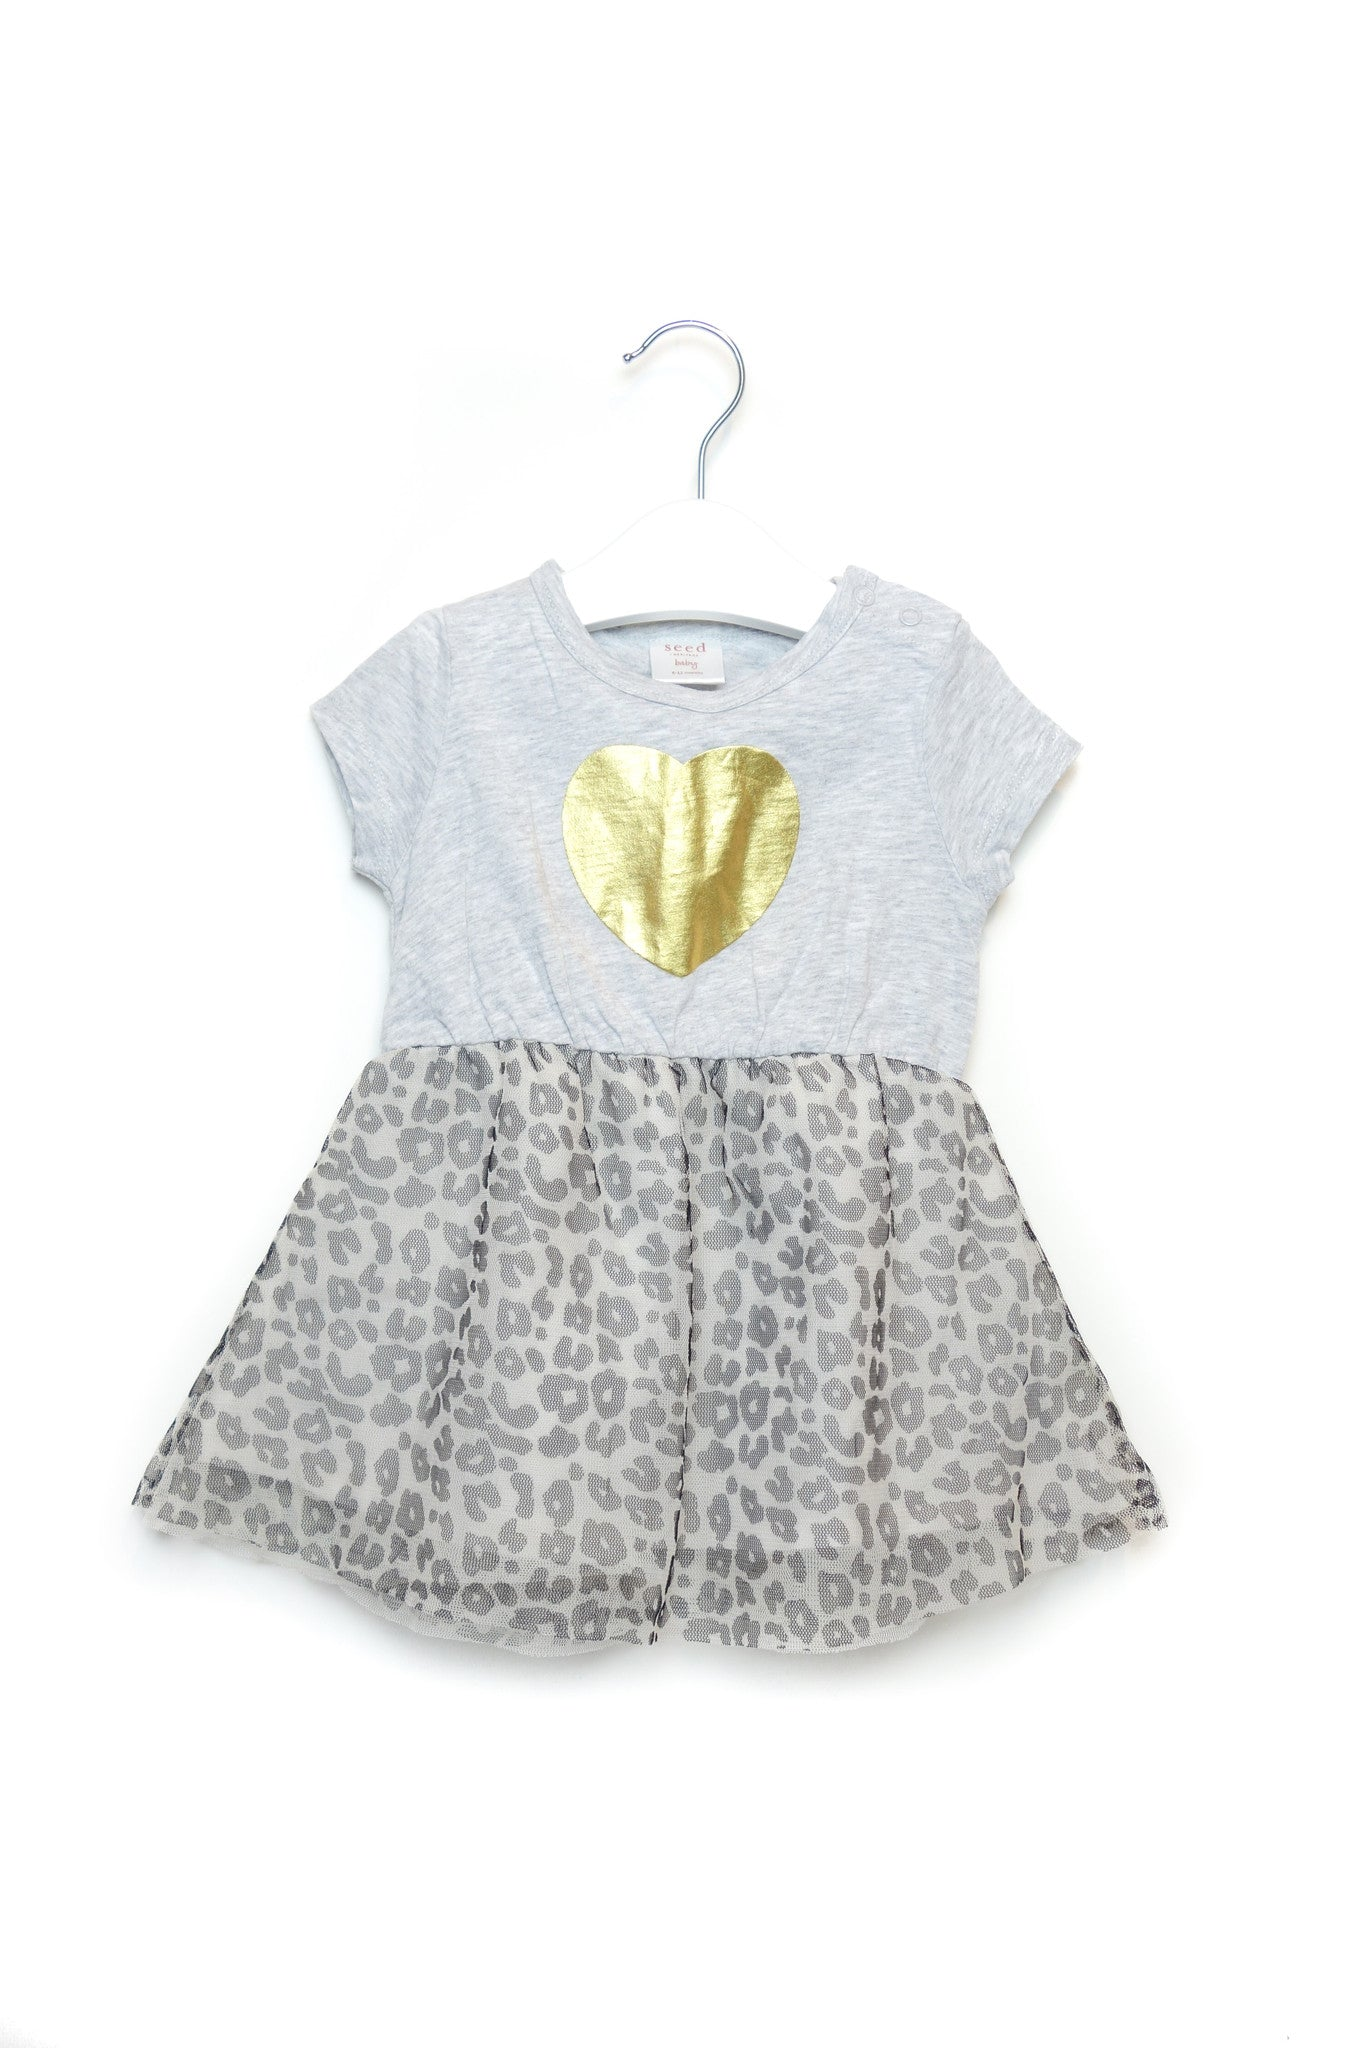 10001446~Dress 6-12M, Seed at Retykle - Online Baby & Kids Clothing Up to 90% Off